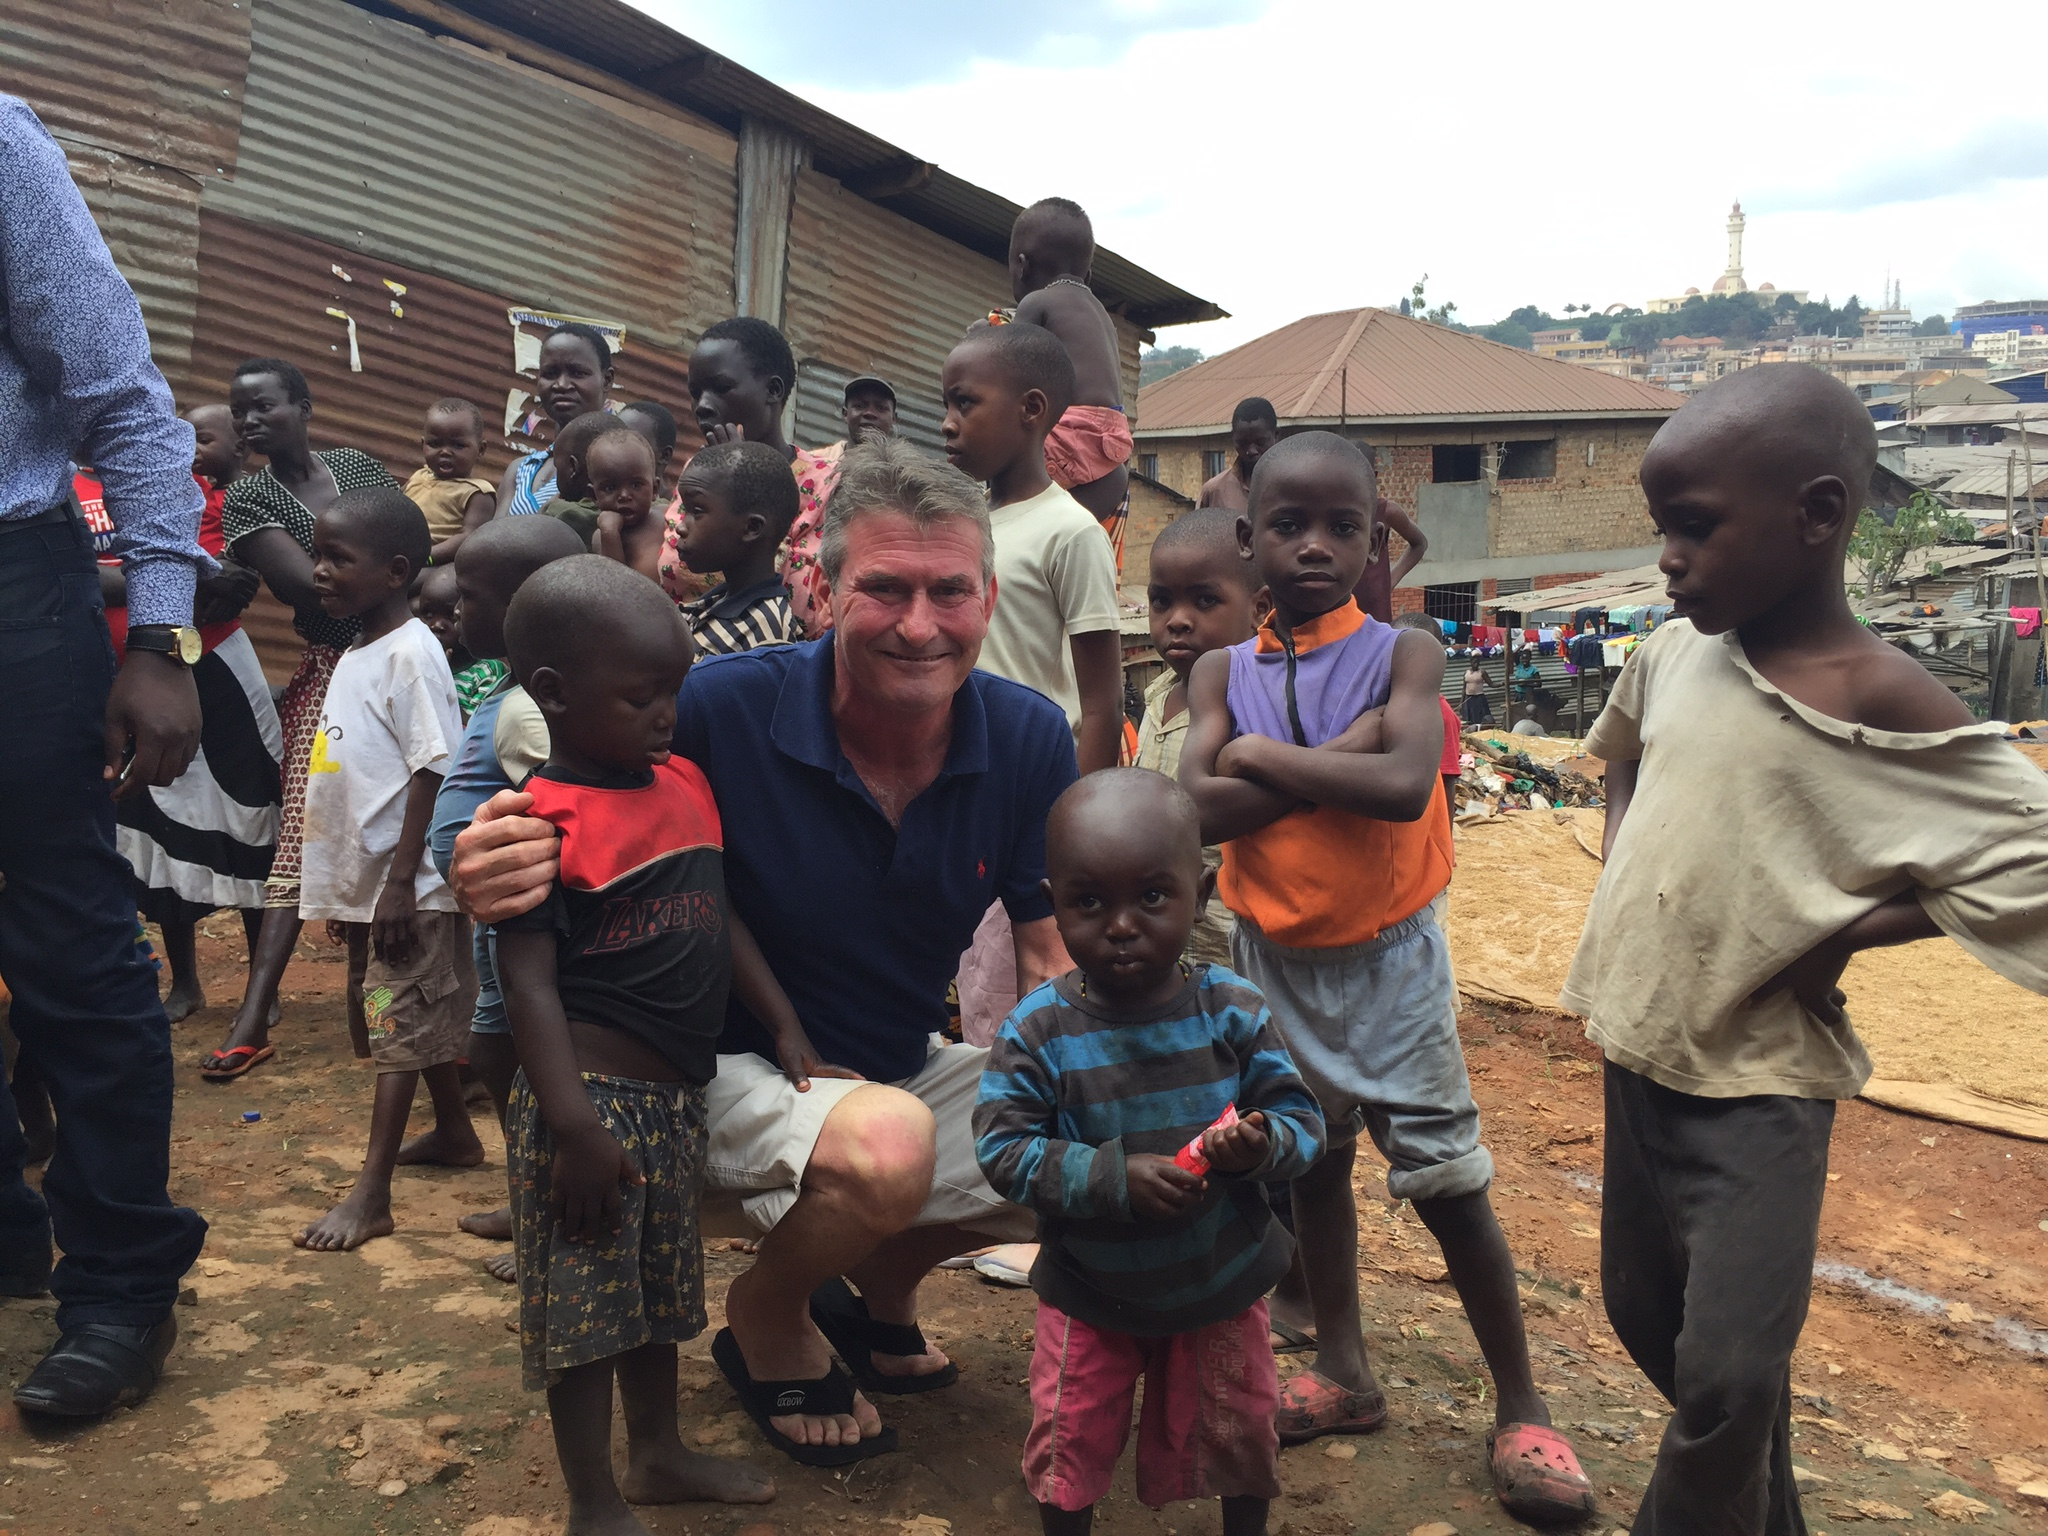 uganda-orphanage-shelter-charity-kids